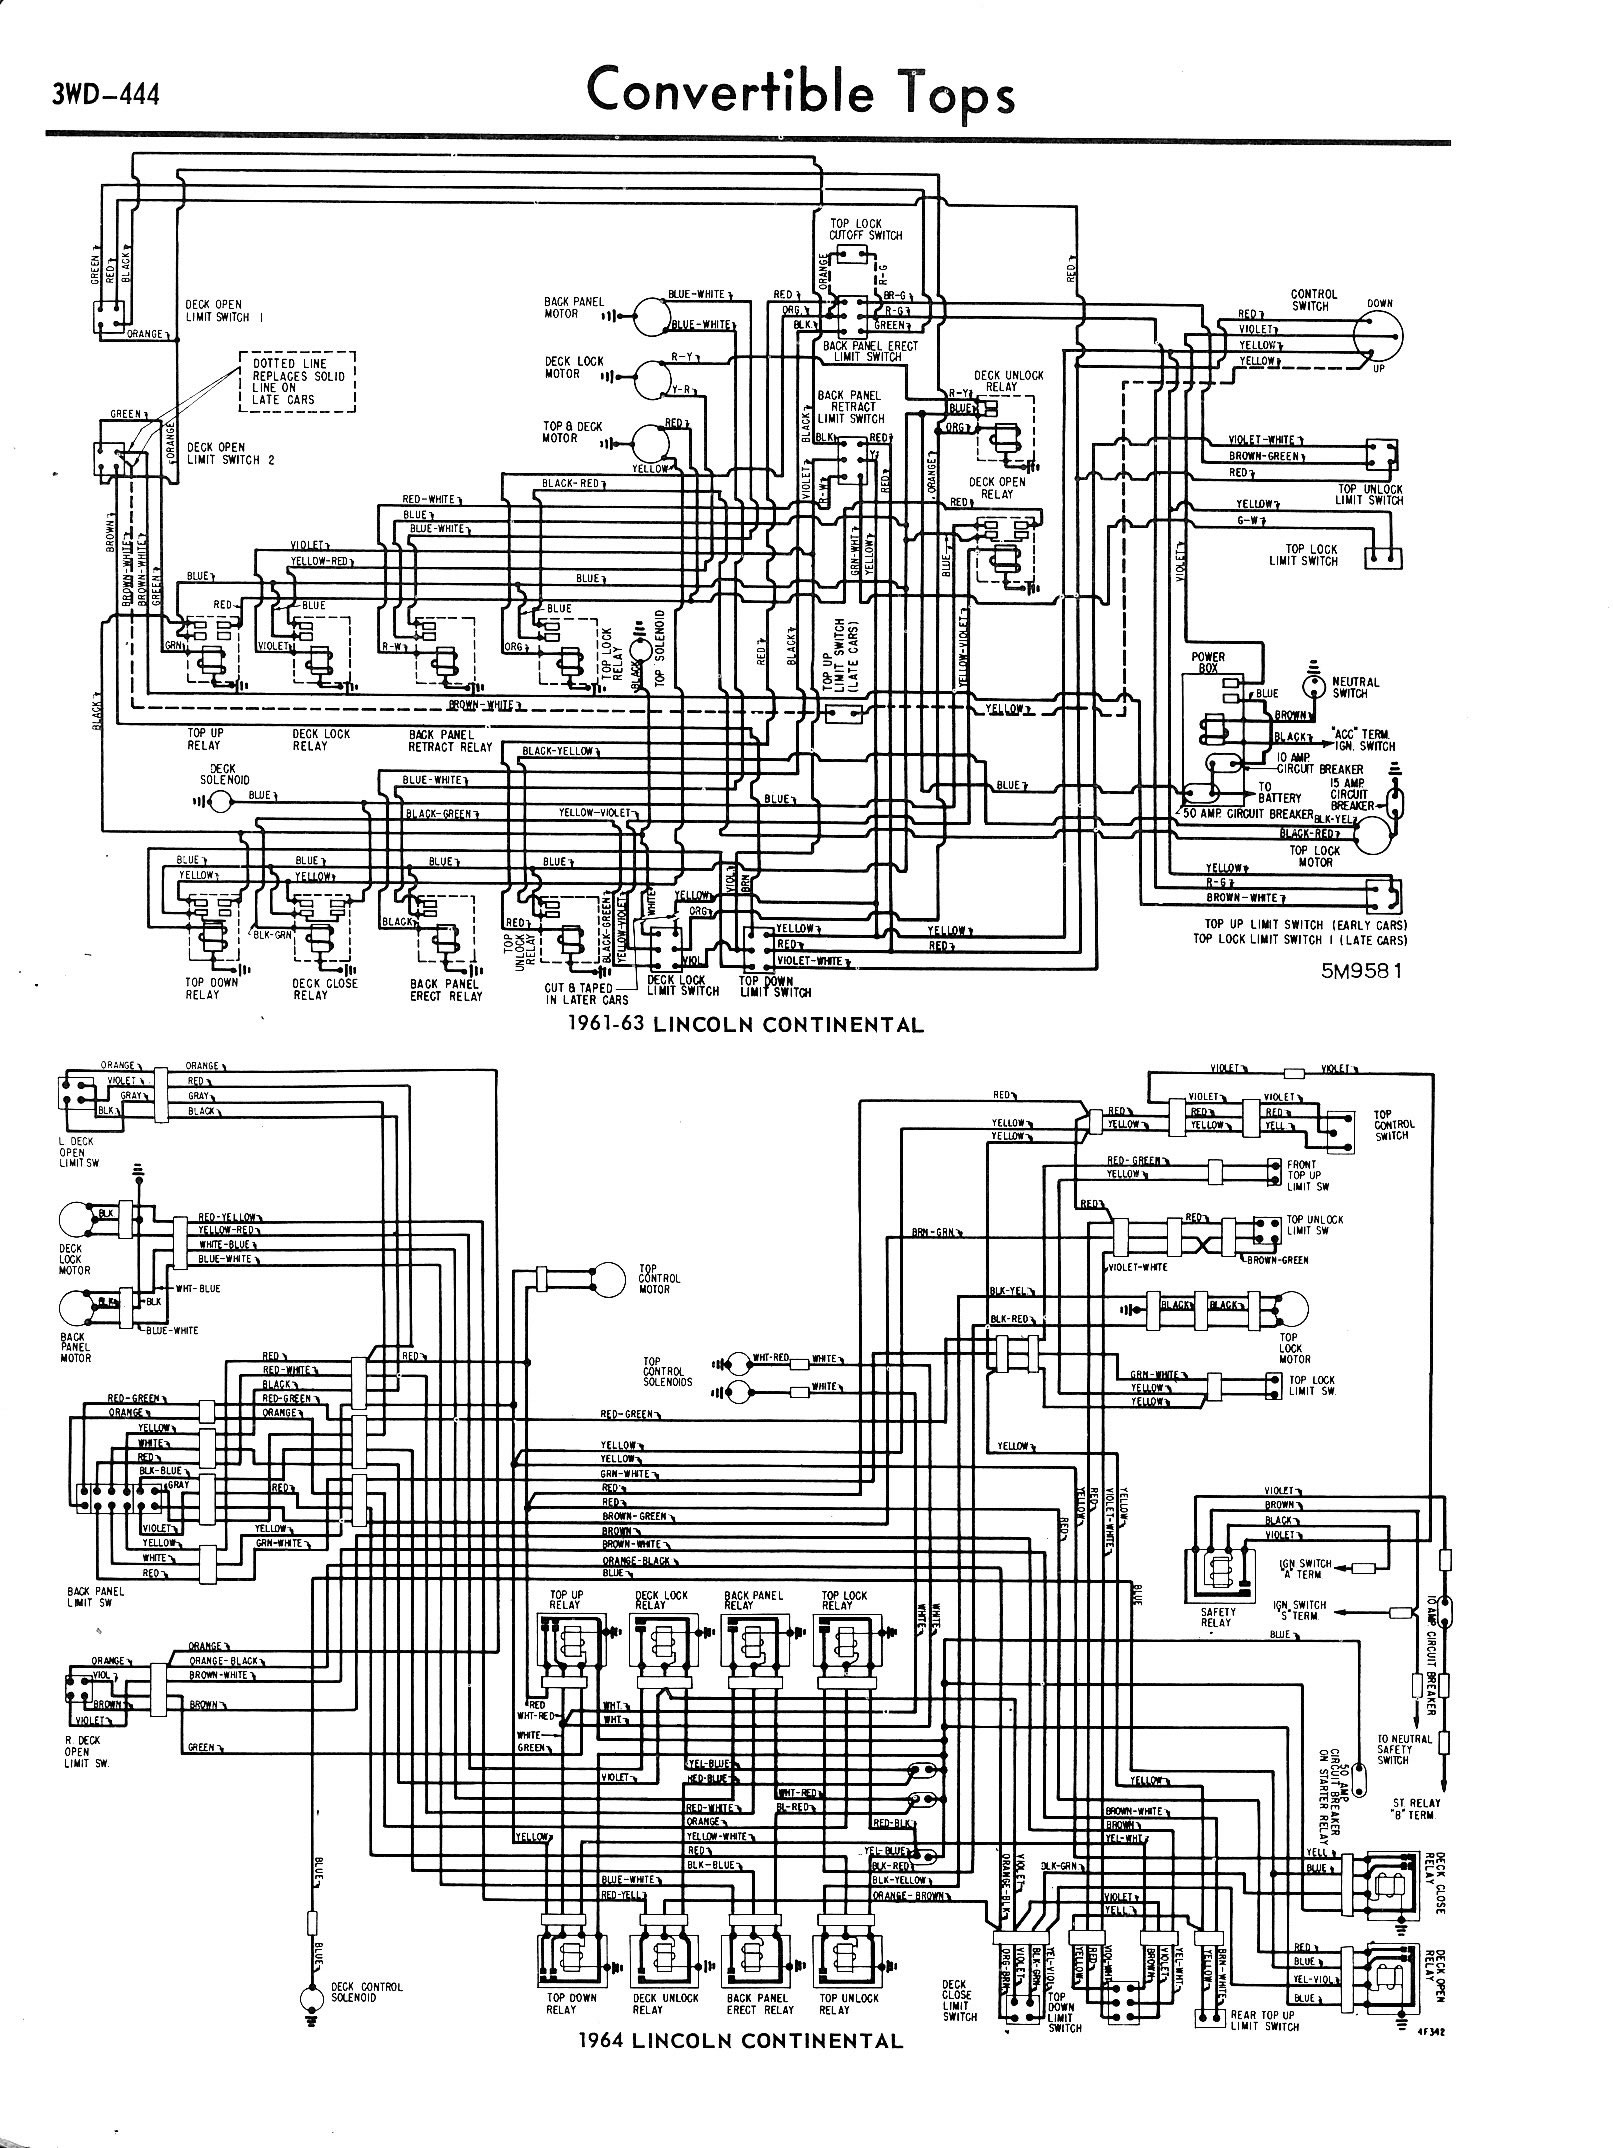 3WD 444_jpg ford diagrams 1964 ford wiring diagram at aneh.co